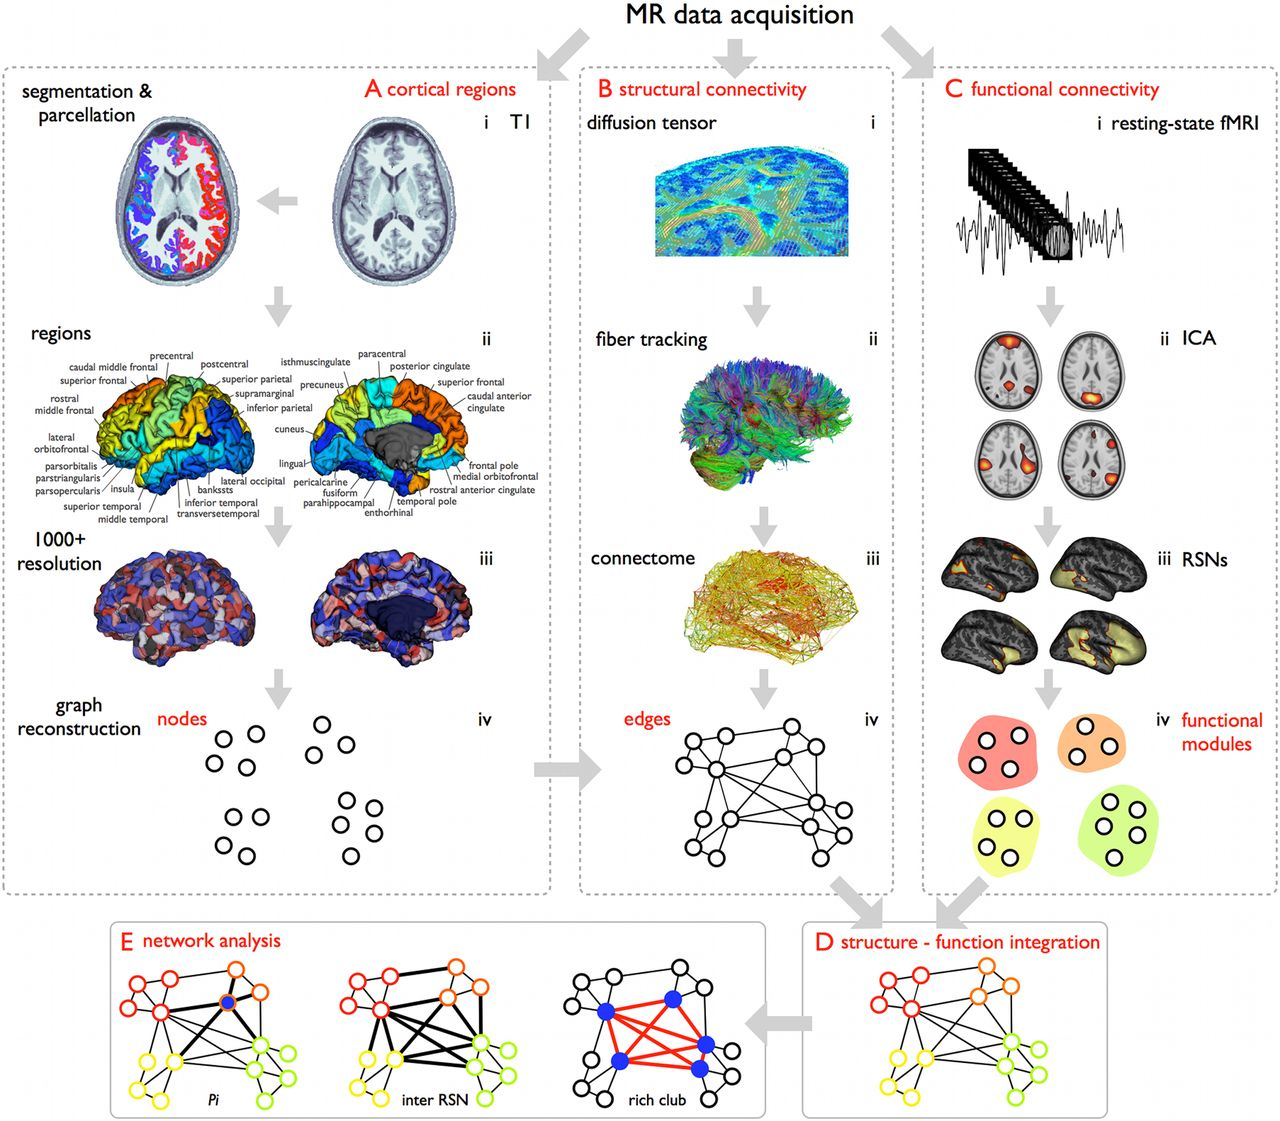 An Anatomical Substrate For Integration Among Functional Networks In